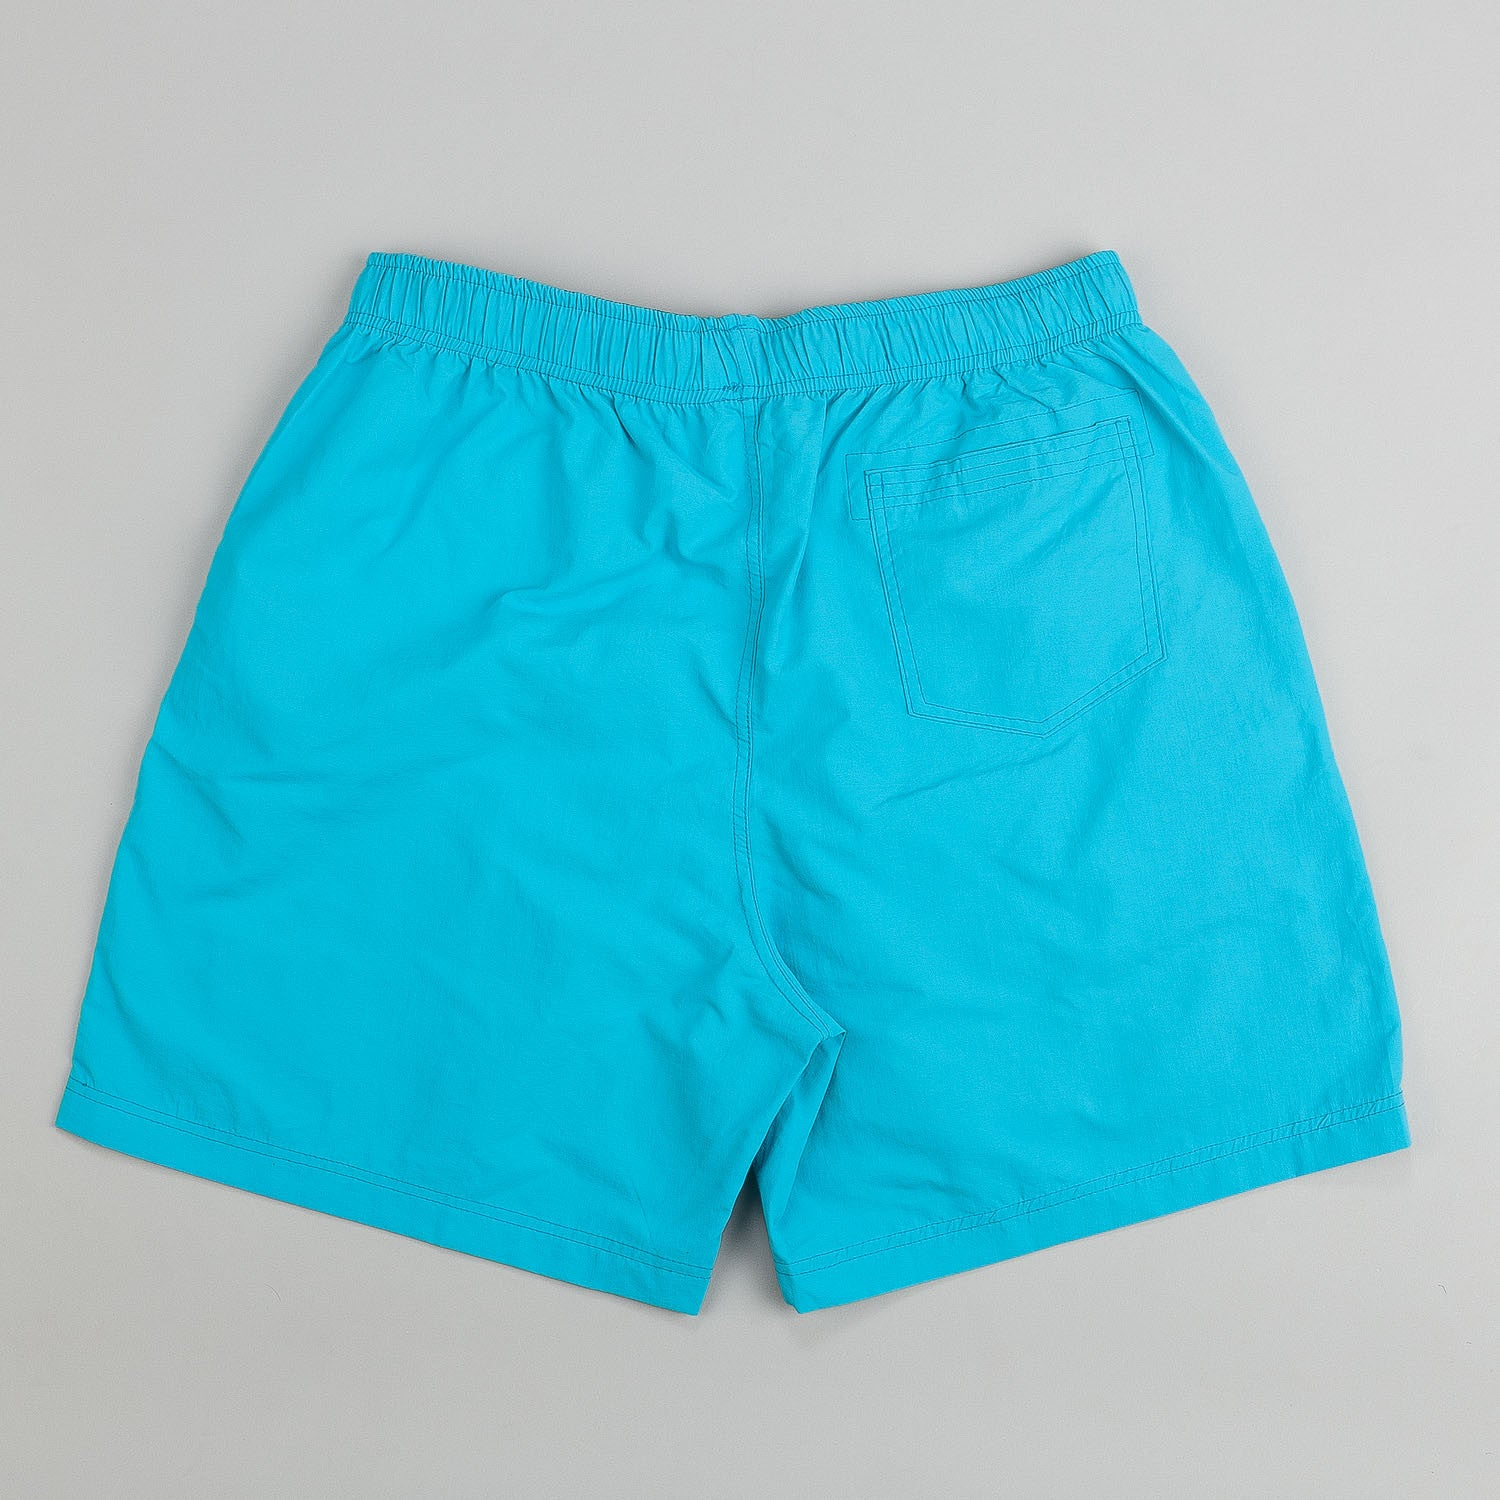 StreetX Polo Shorts - Aqua